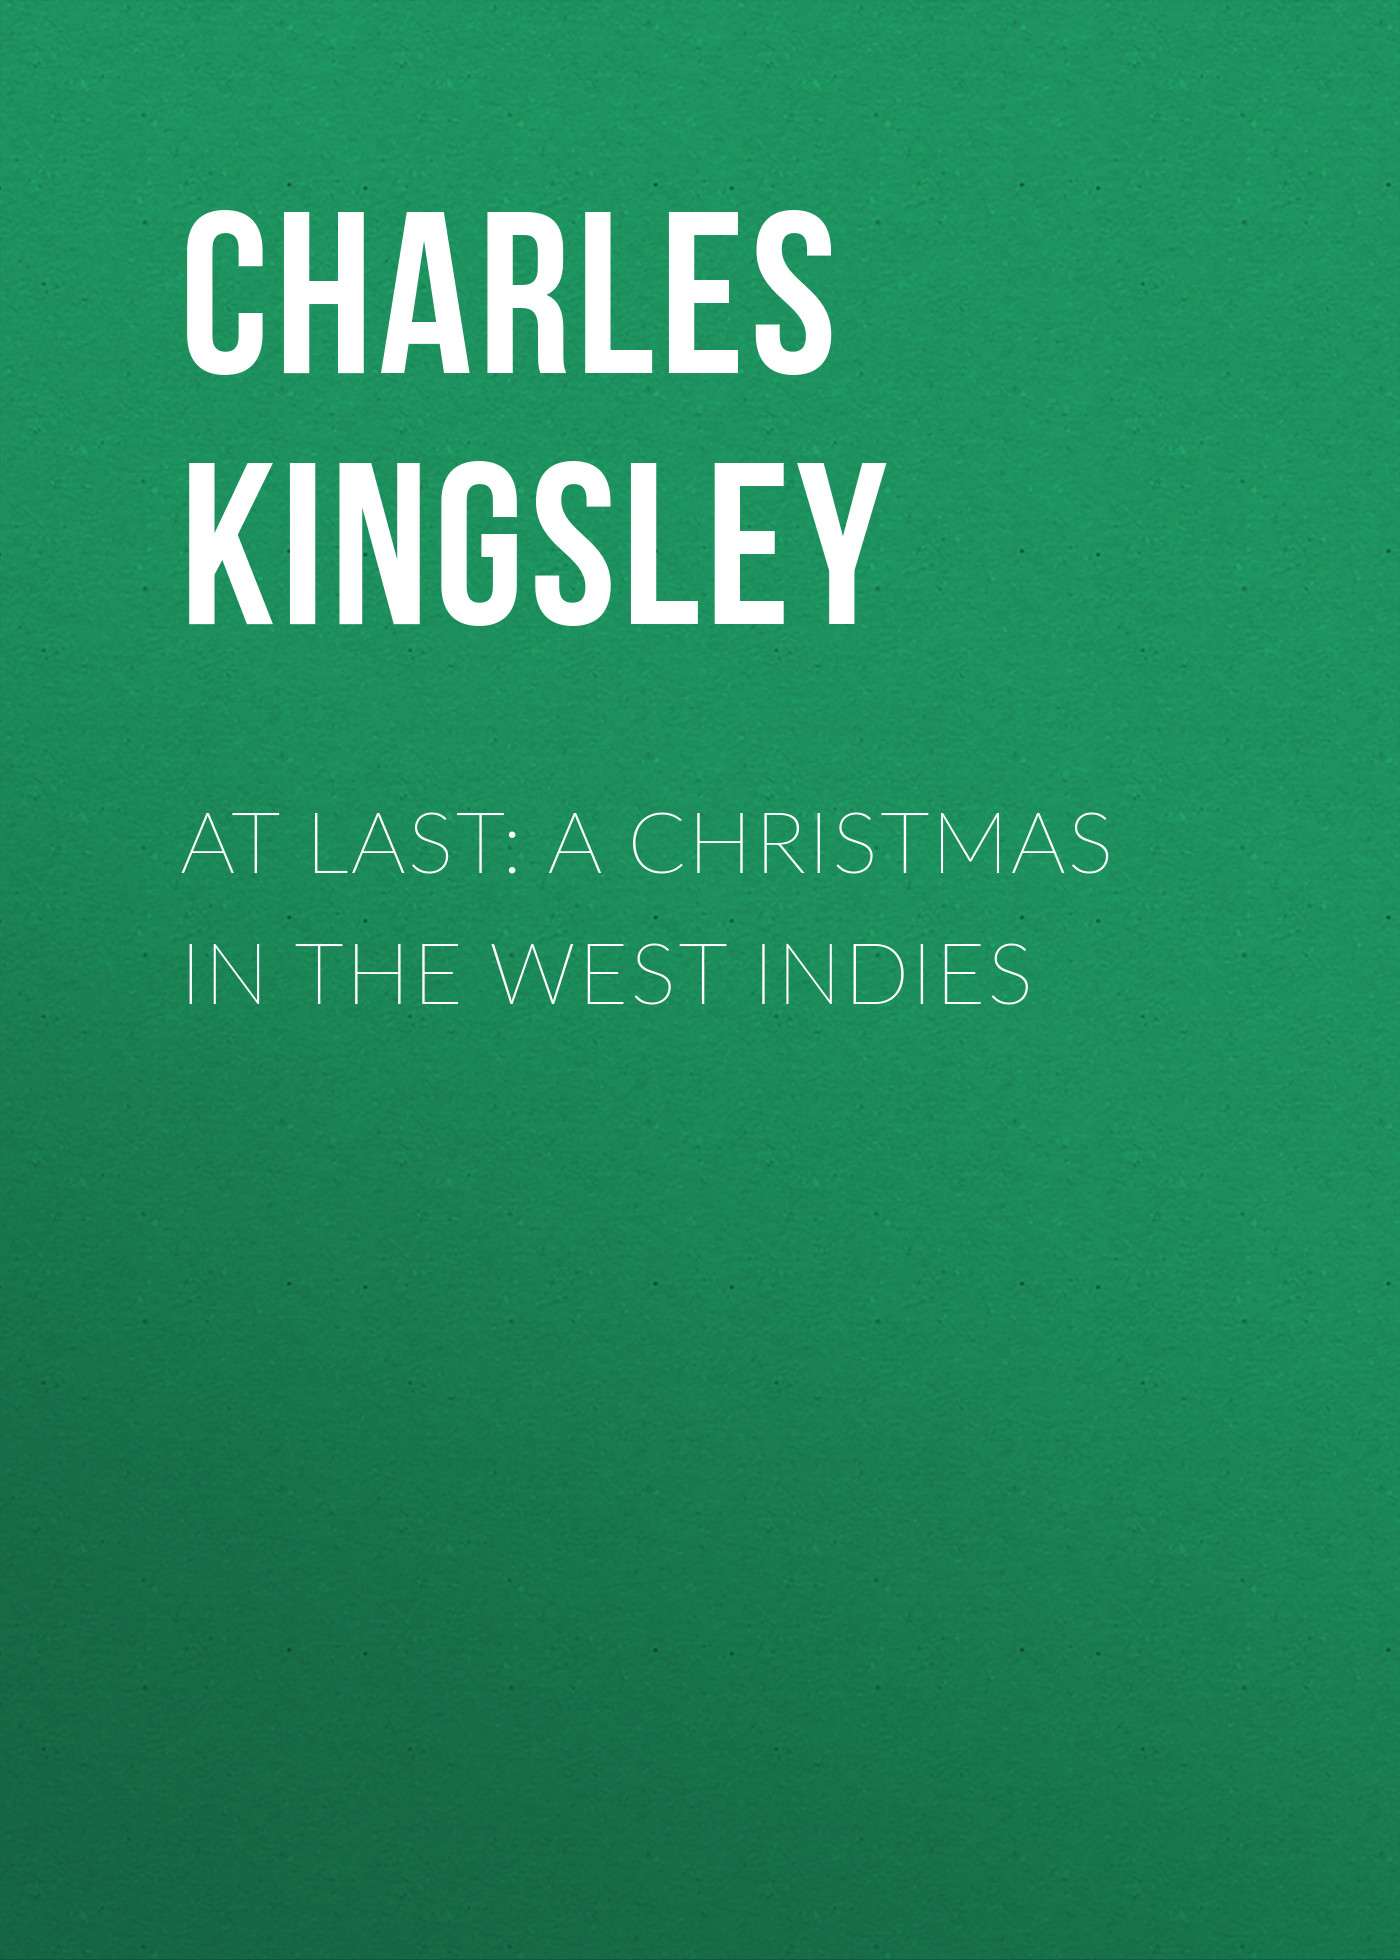 Charles Kingsley At Last: A Christmas in the West Indies at last